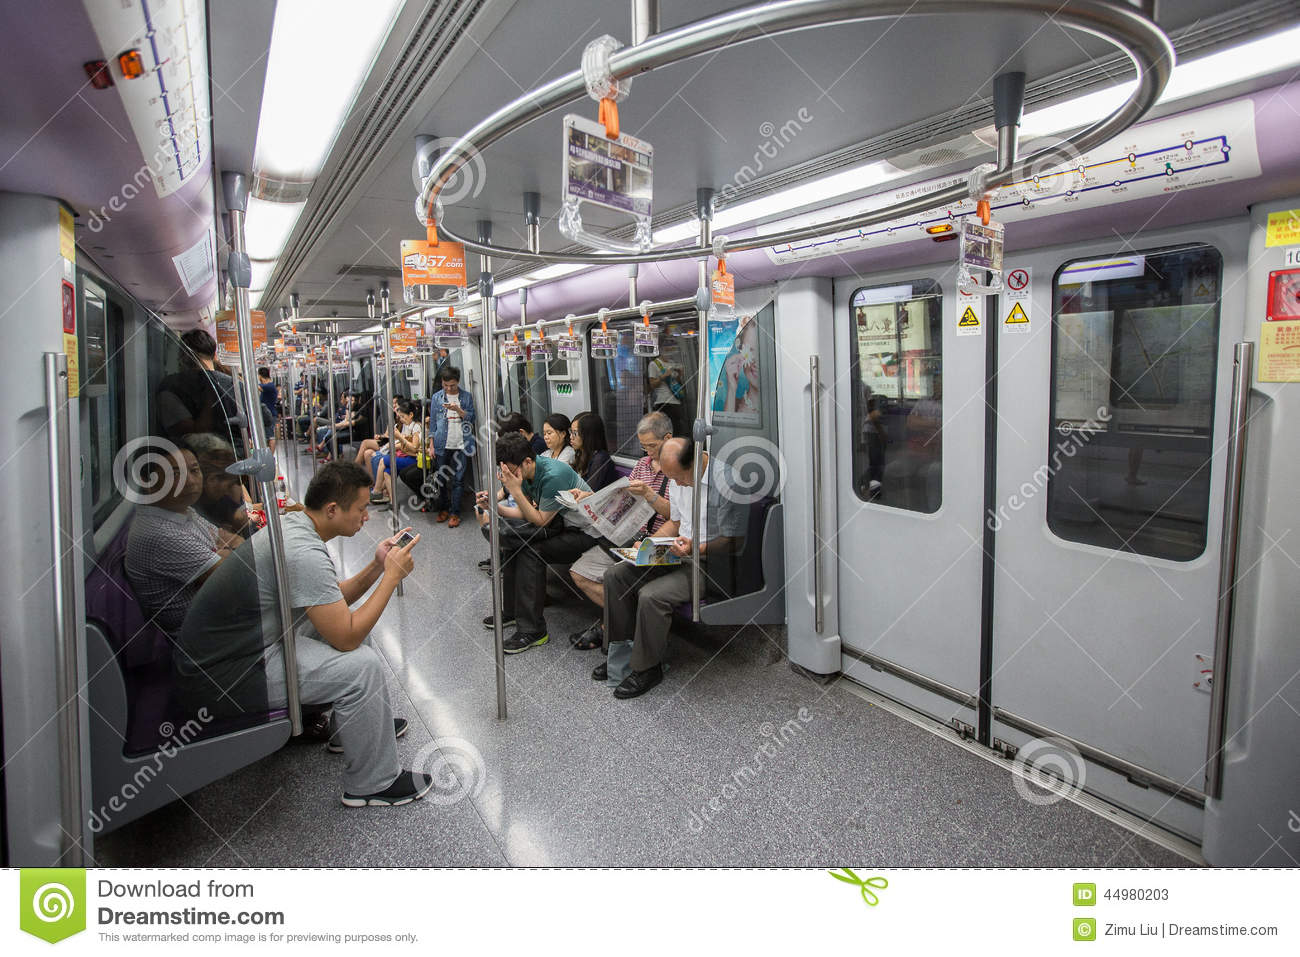 Inside Shot Of A Metro Train Editorial Stock Photo - Image ...